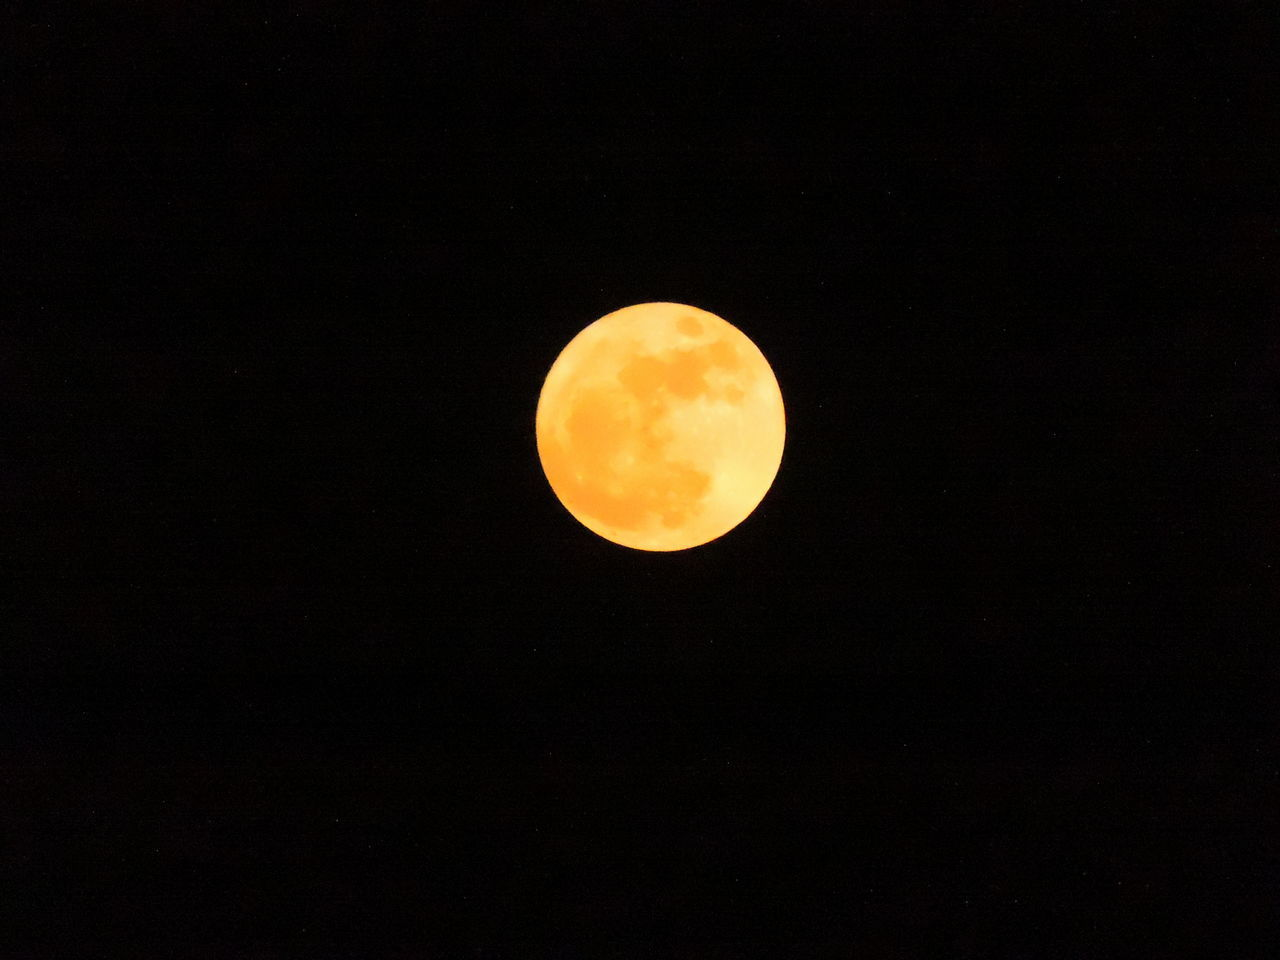 Full Super Moon 2016 Astronomy Beauty In Nature Black Background Full Moon Low Angle View Moon Moon Surface Nature Night No People Outdoors Scenics Sky Space Stars Supermoon2016 Yellowmoon